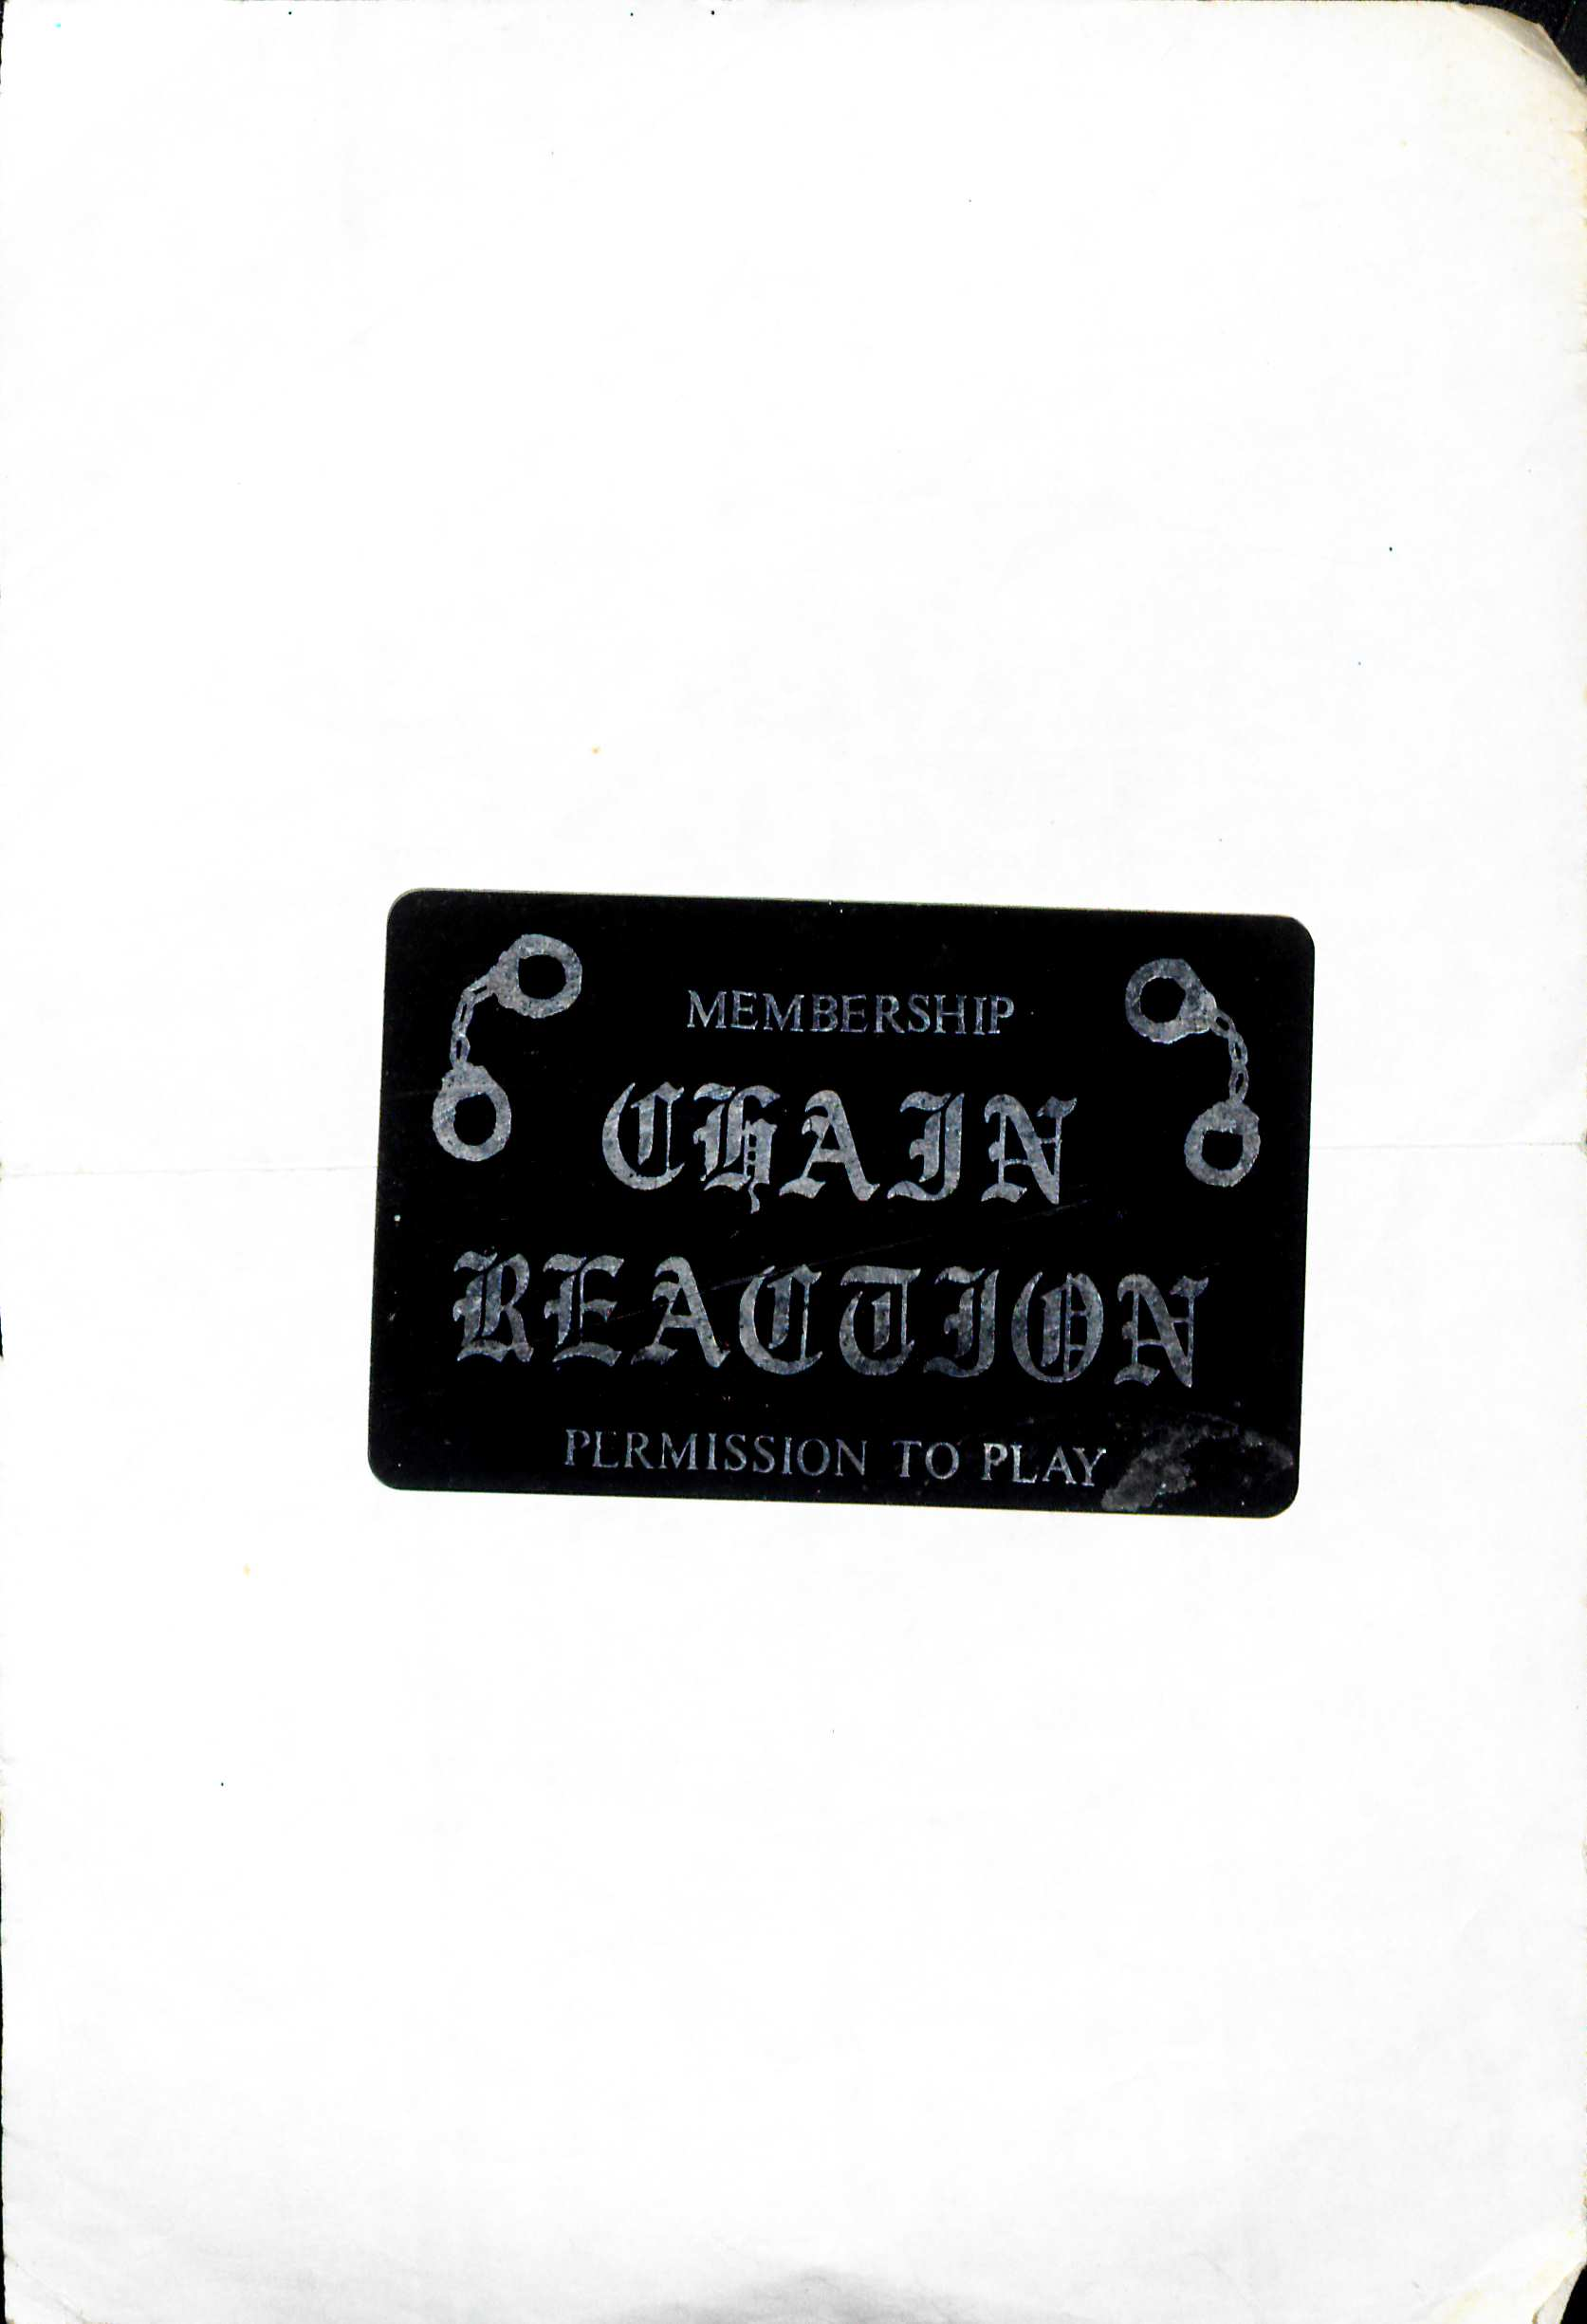 Chain Reaction membership card